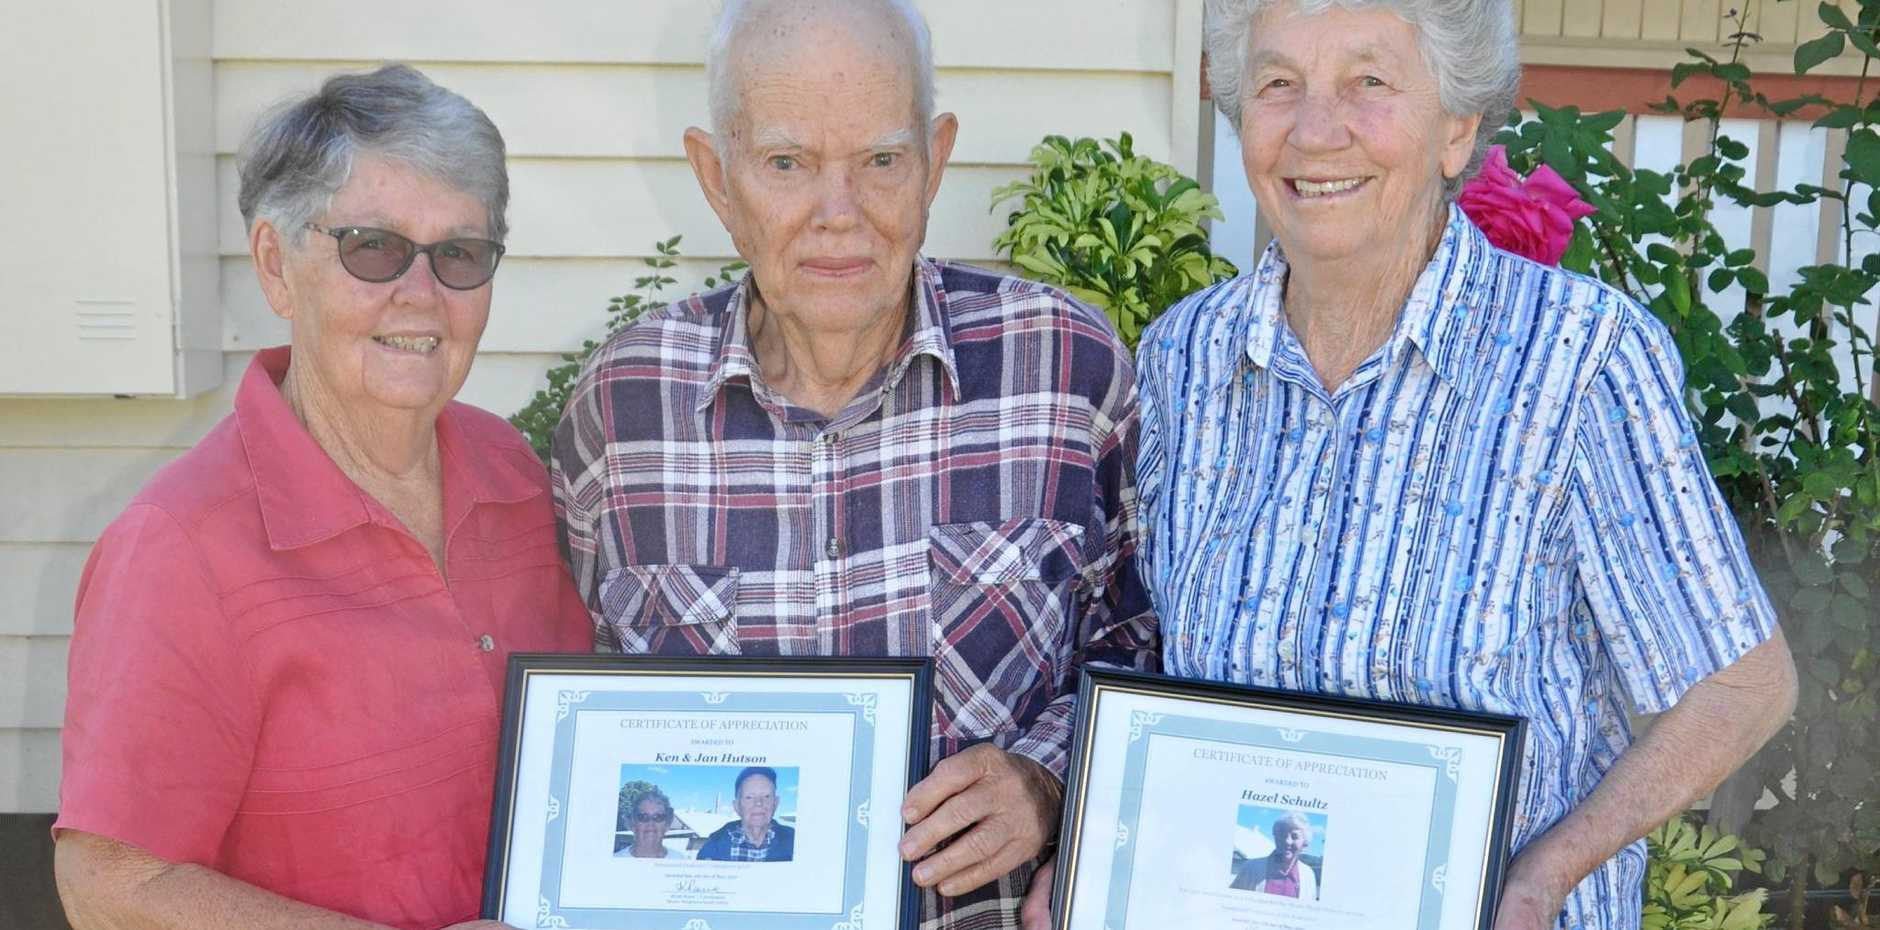 DEDICATION: Jan and Ken Hutson and Hazel Schultz, along with Dawn Dowling (not pictured), were commended for their service to Meals on Wheels.